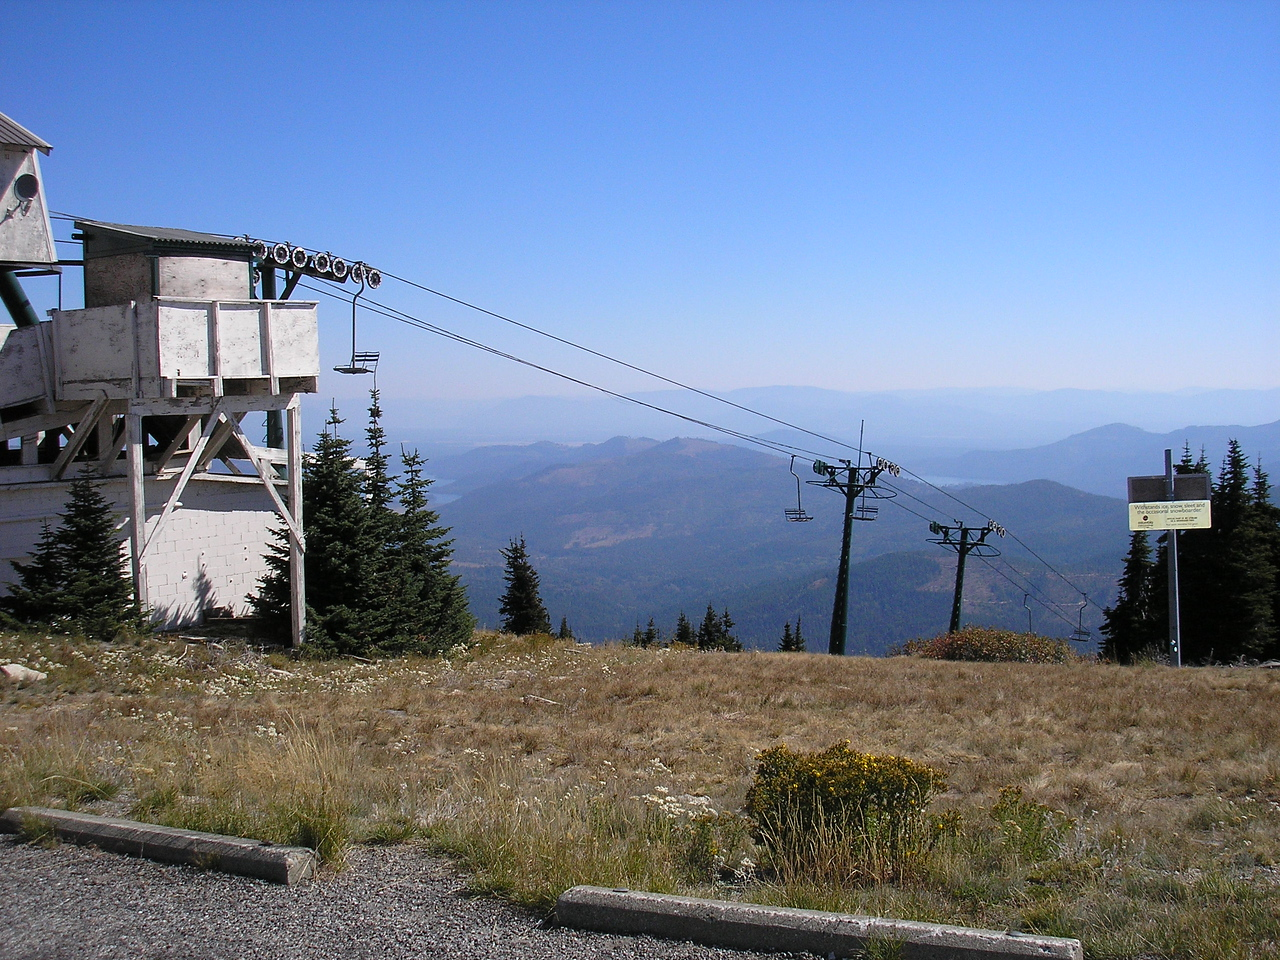 We went to the highest place near Spokane, it is called MT. Spokane.  They have a ski lift at the top.